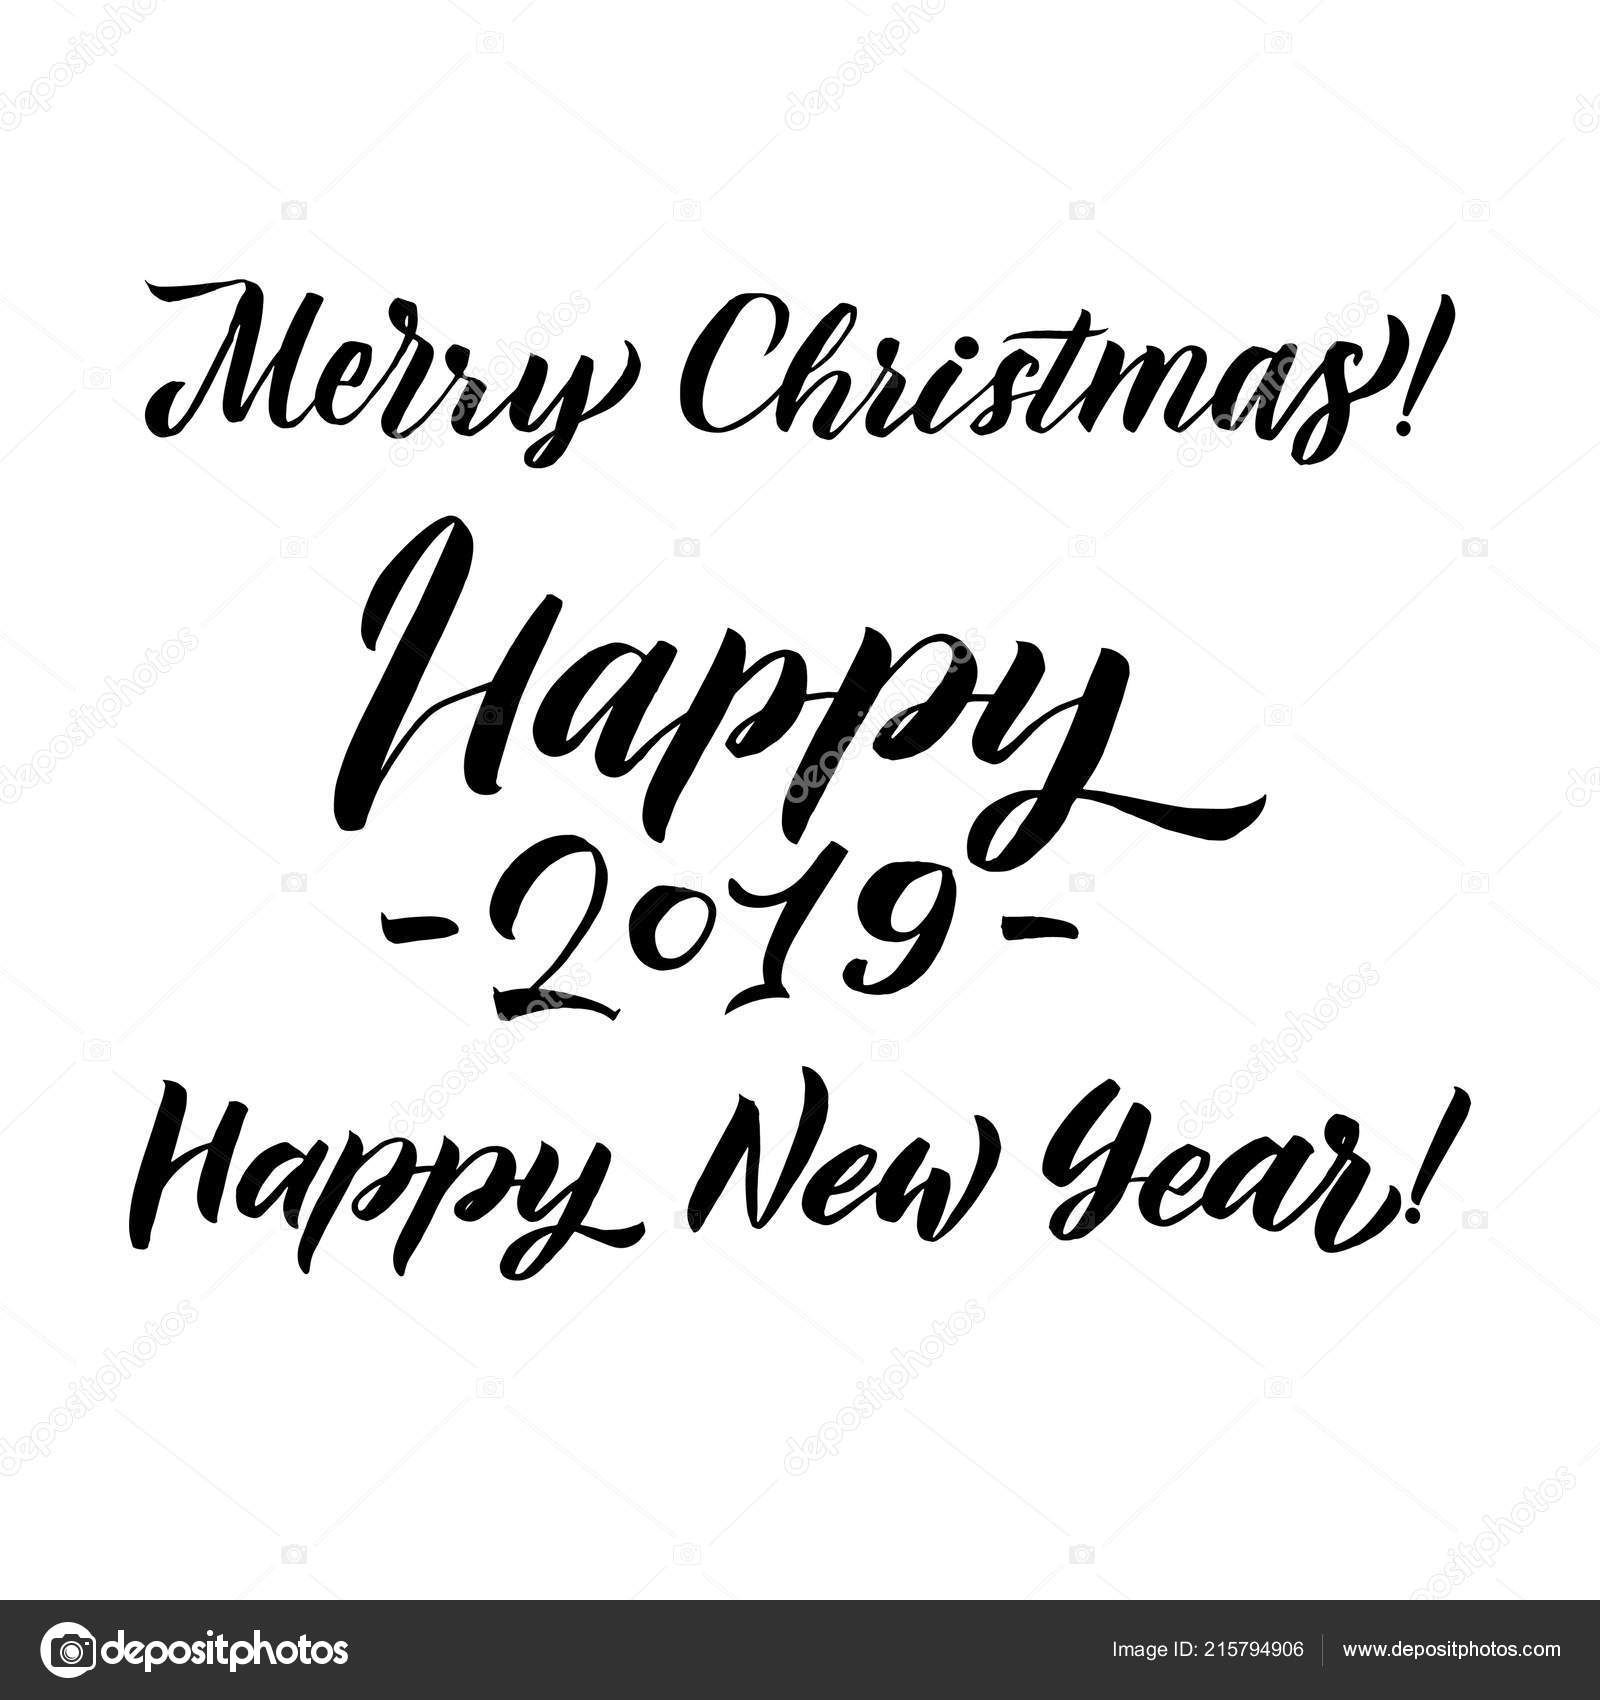 Merry Christmas And Happy New Year Calligraphy